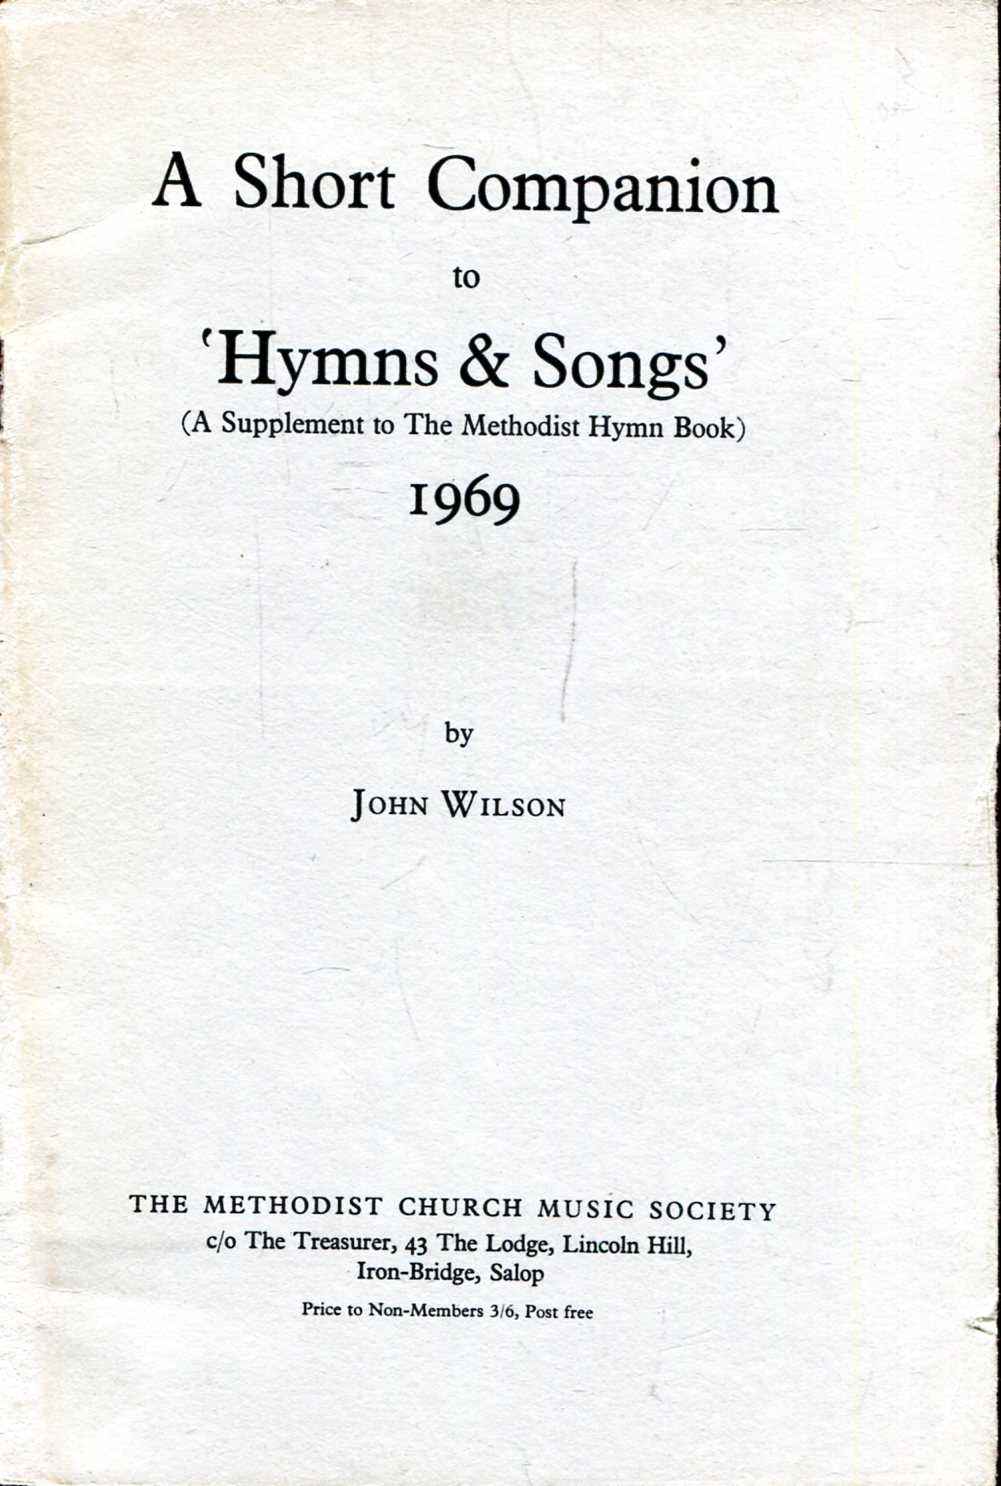 Image for A Short Companion to 'Hymns & Songs' (A Supplement to The Methodist Hymn Book)